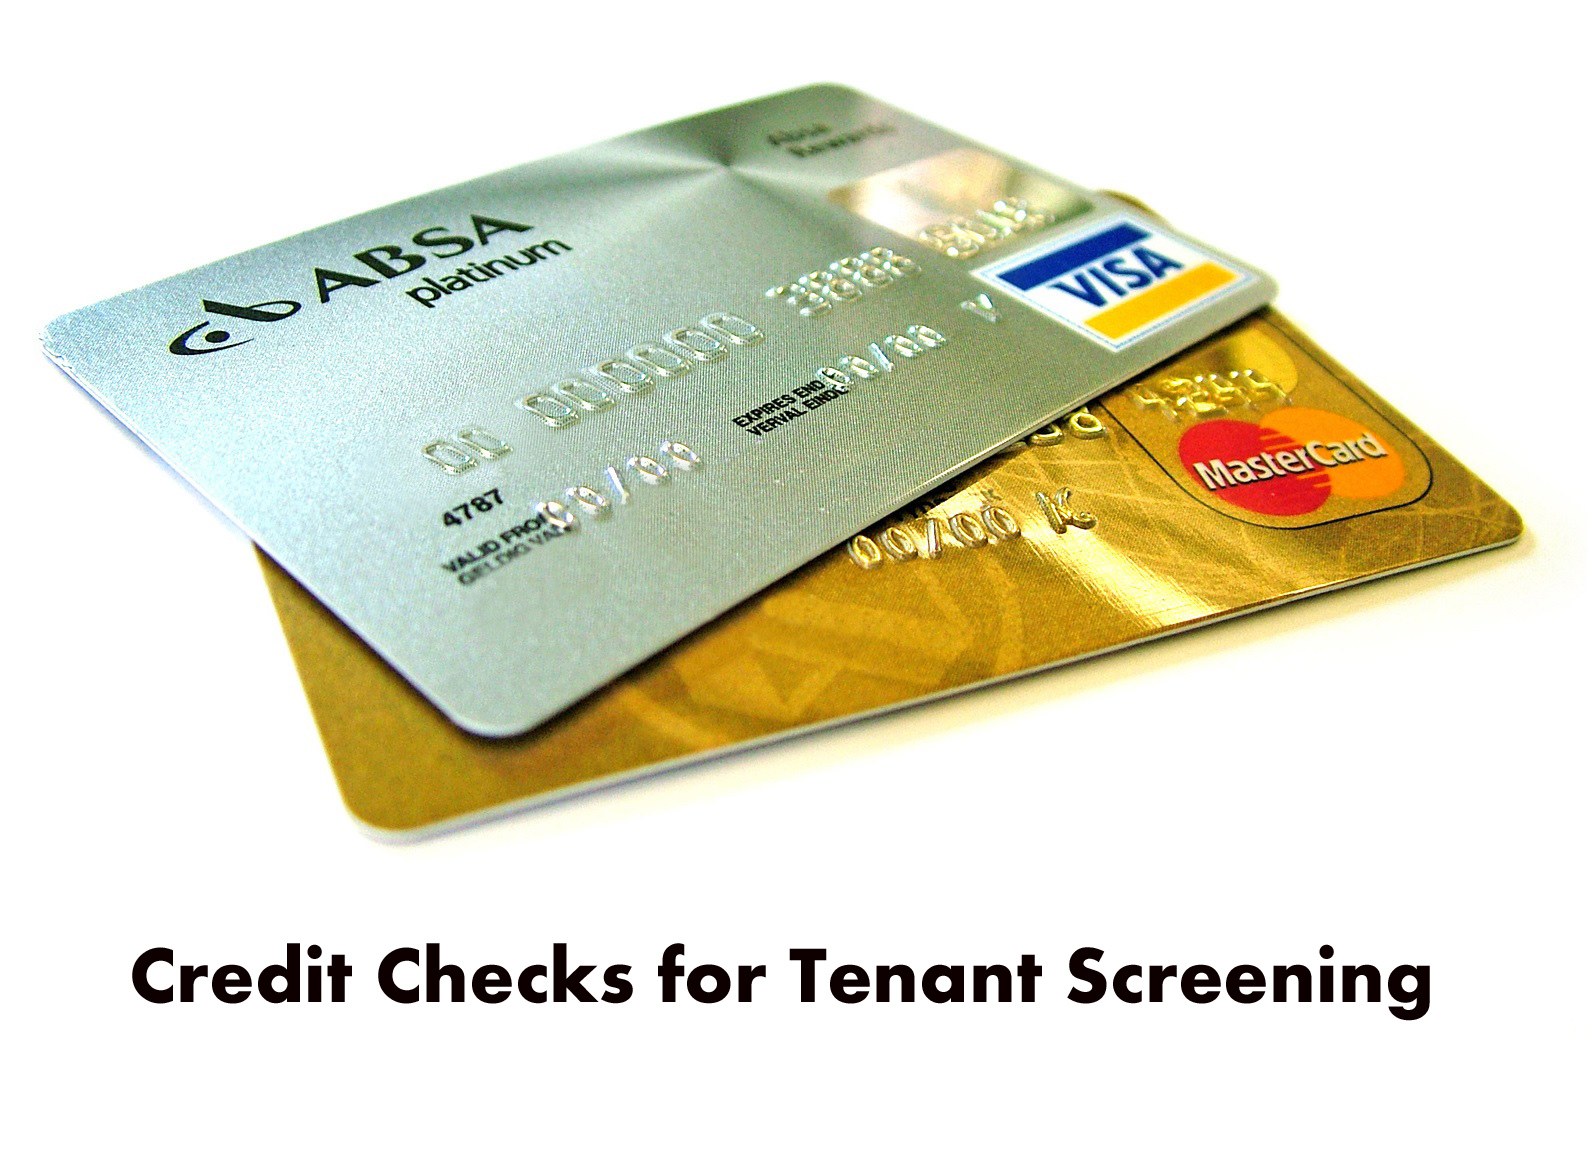 Credit Checks for Tenant Screening